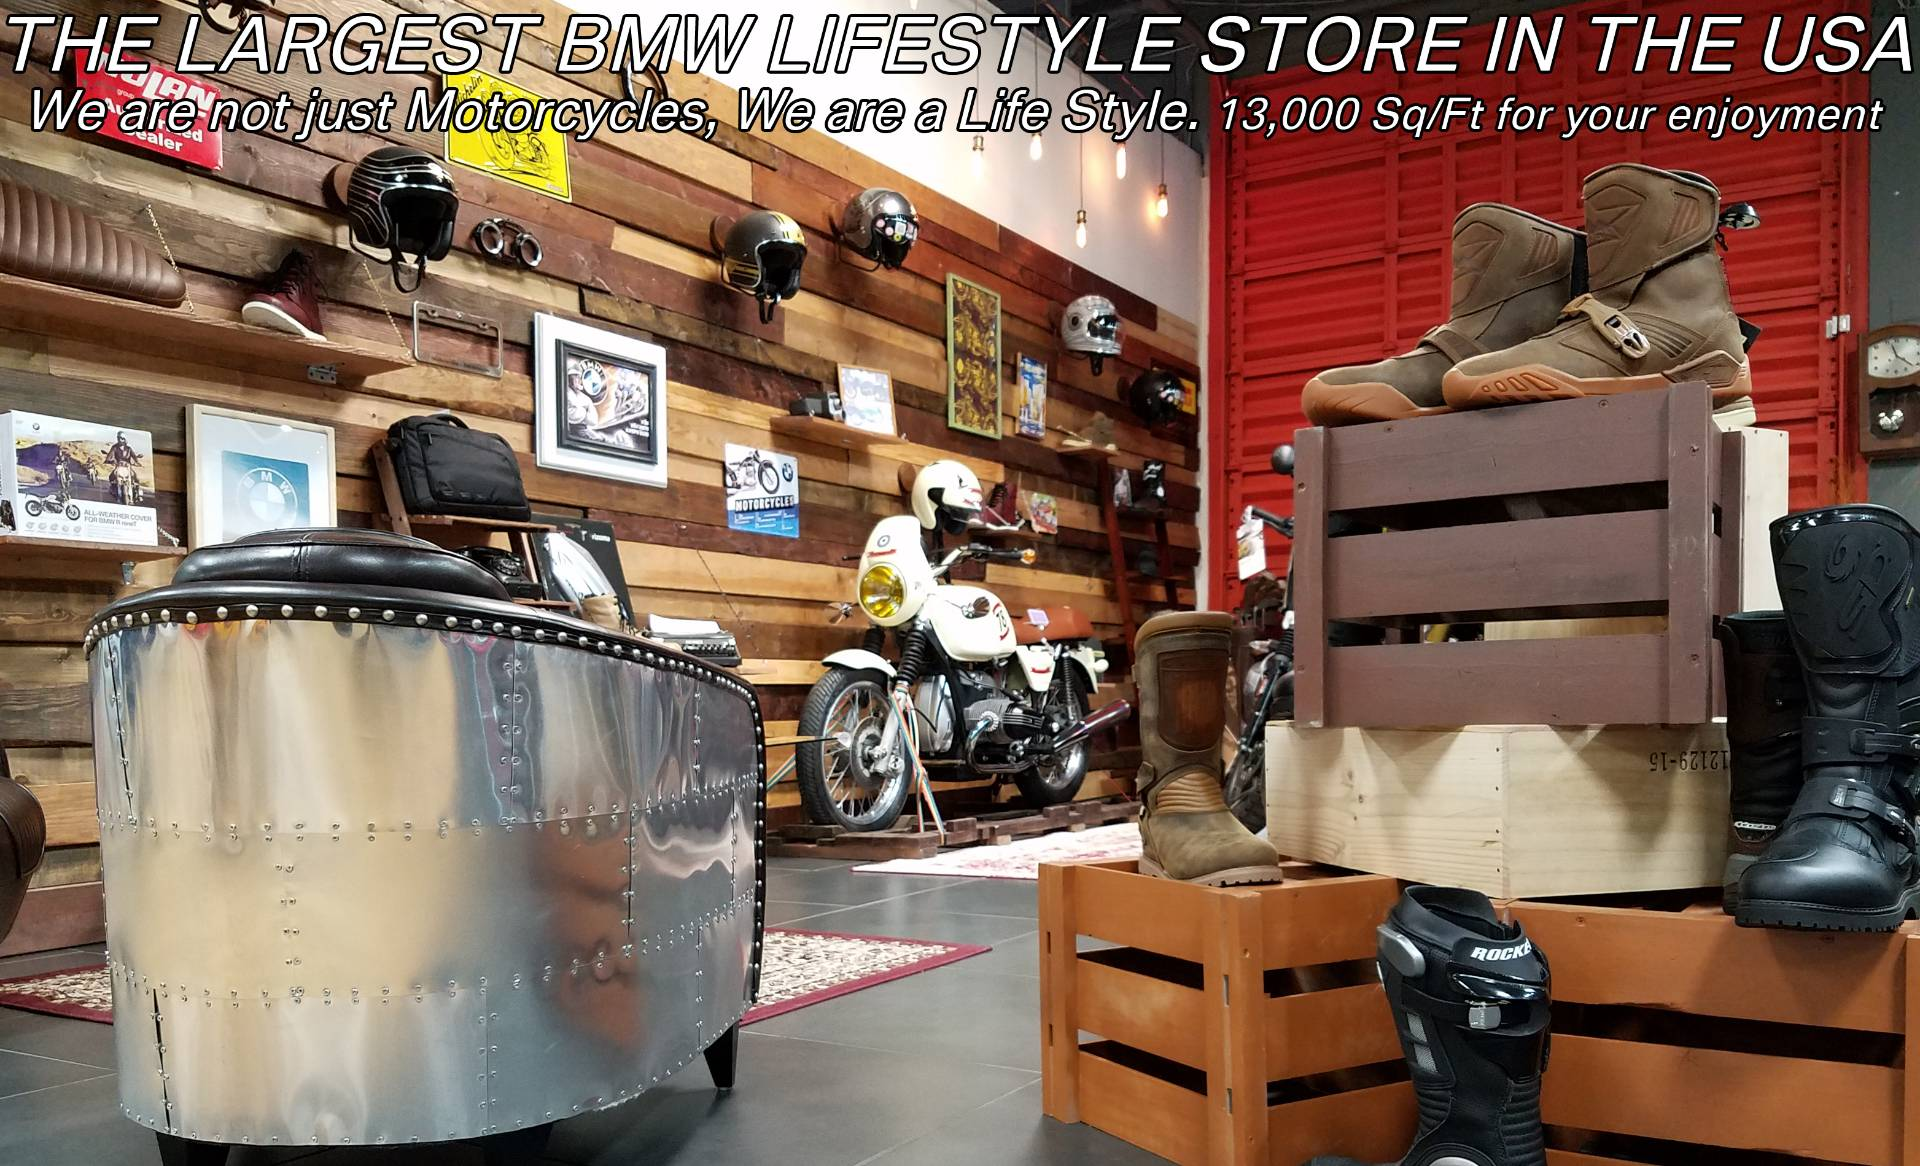 New 2019 BMW S 1000 R for sale, BMW S 1000R for sale, BMW Motorcycle S1000R, new BMW R, Sport, roadster, naked. BMW Motorcycles of Miami, Motorcycles of Miami, Motorcycles Miami, New Motorcycles, Used Motorcycles, pre-owned. #BMWMotorcyclesOfMiami #MotorcyclesOfMiami #MotorcyclesMiami - Photo 35